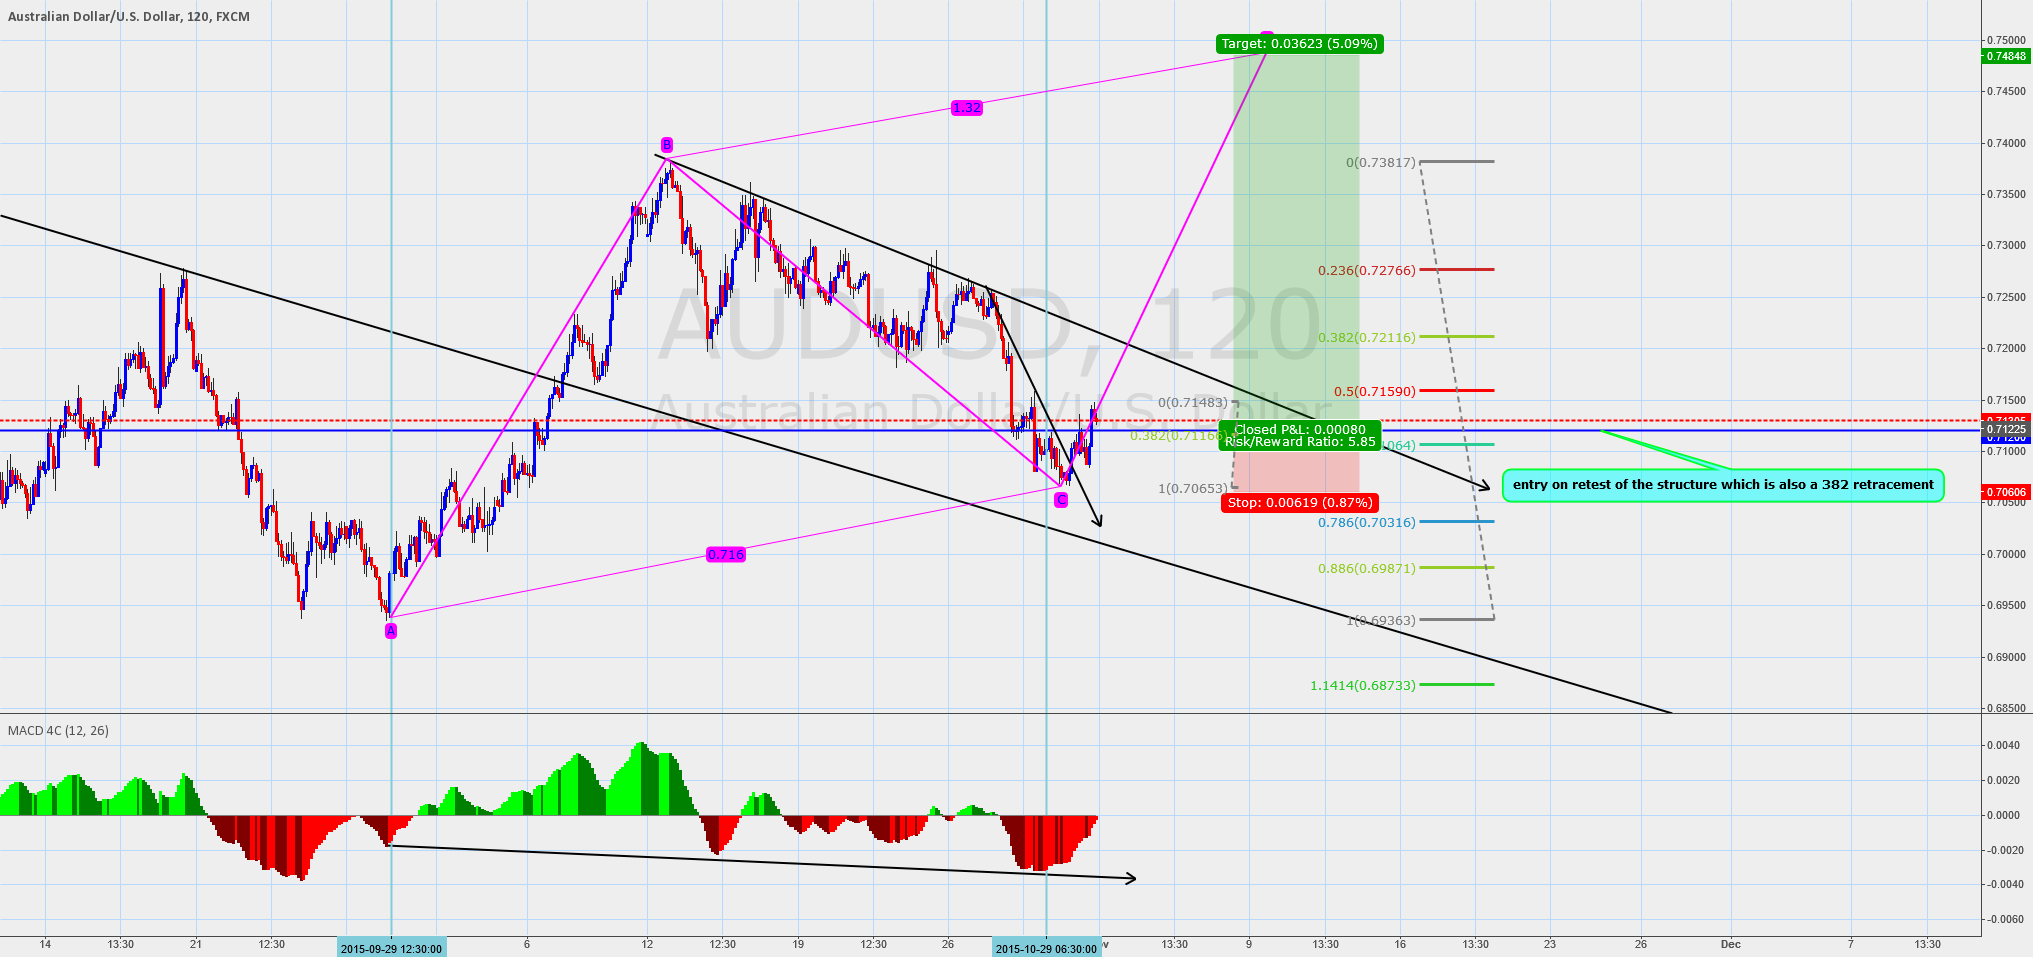 Bullish bias audusd